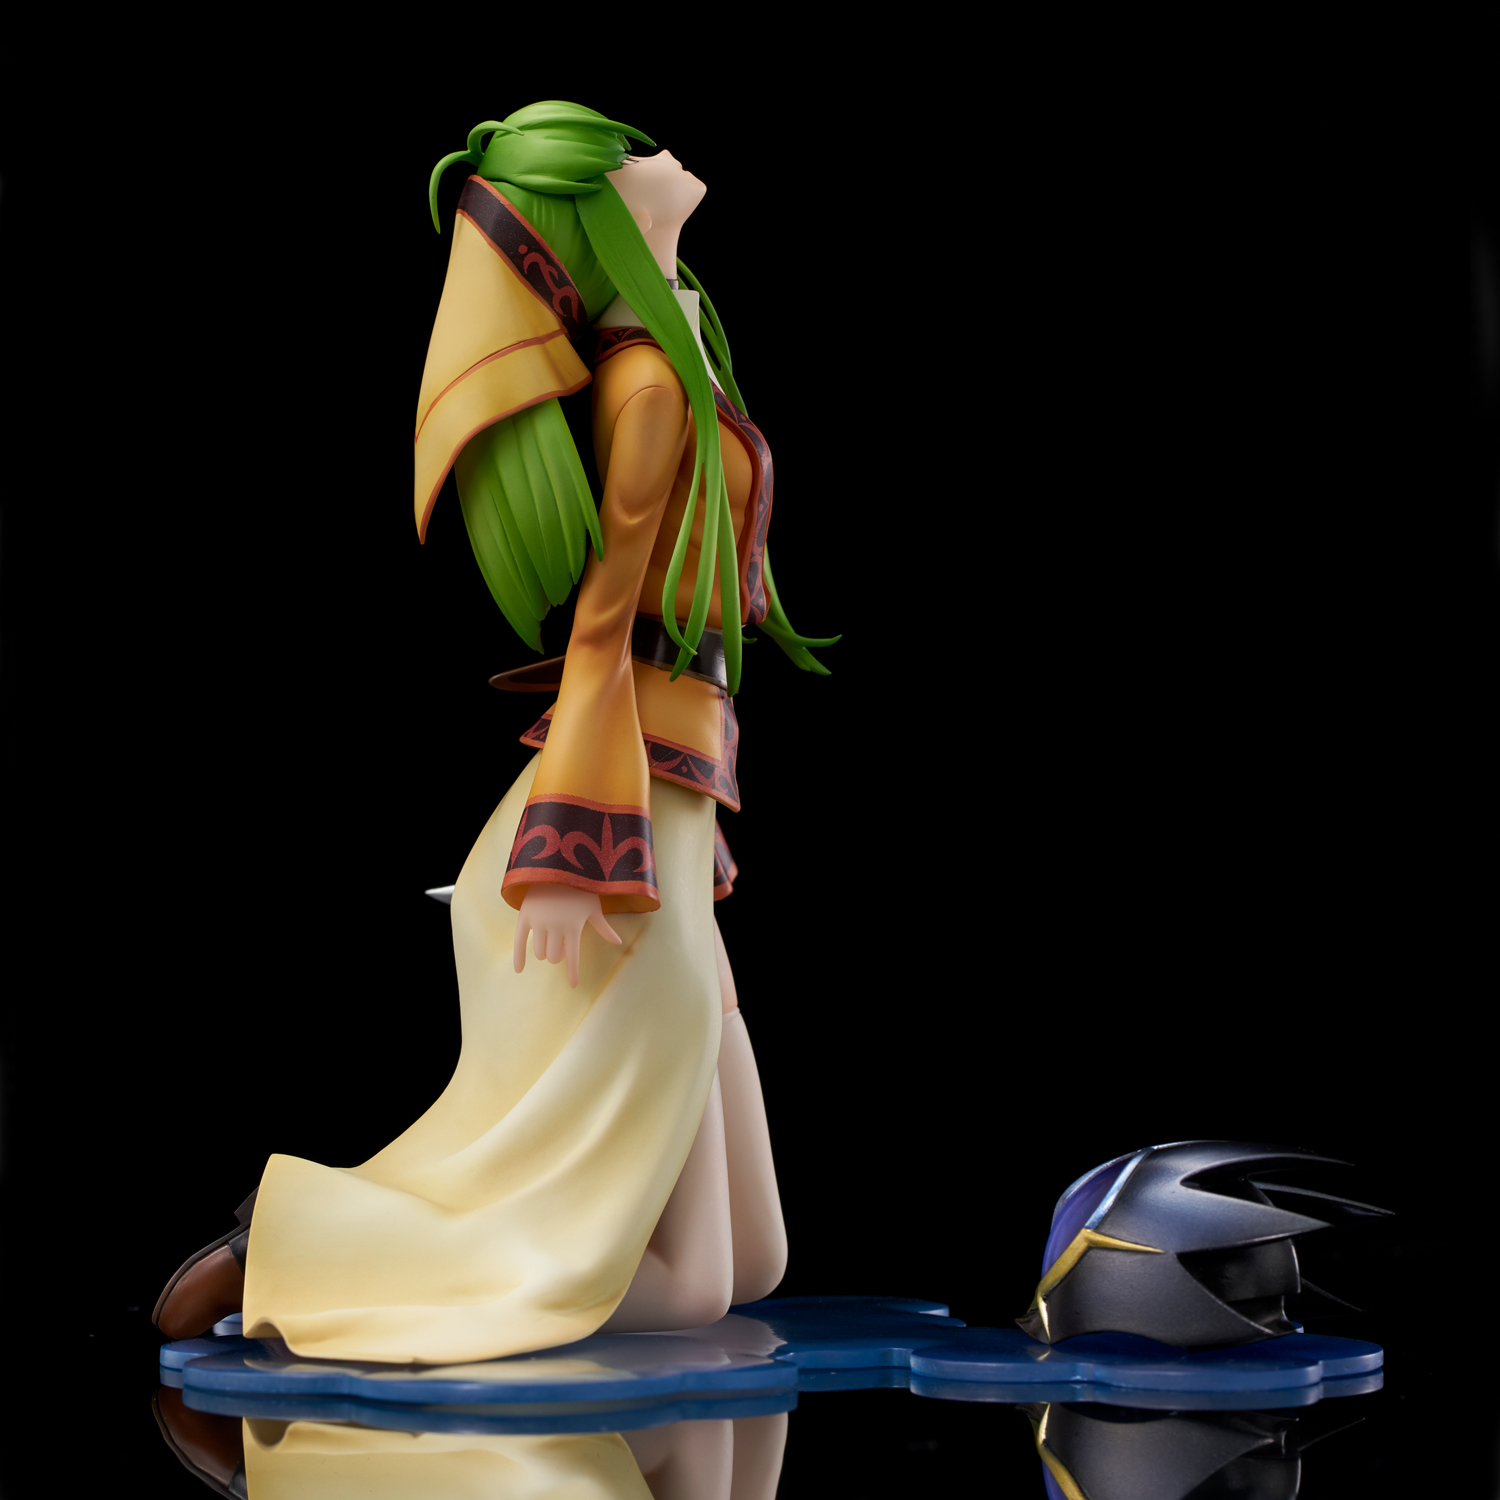 Code Geass Lelouch of the Re